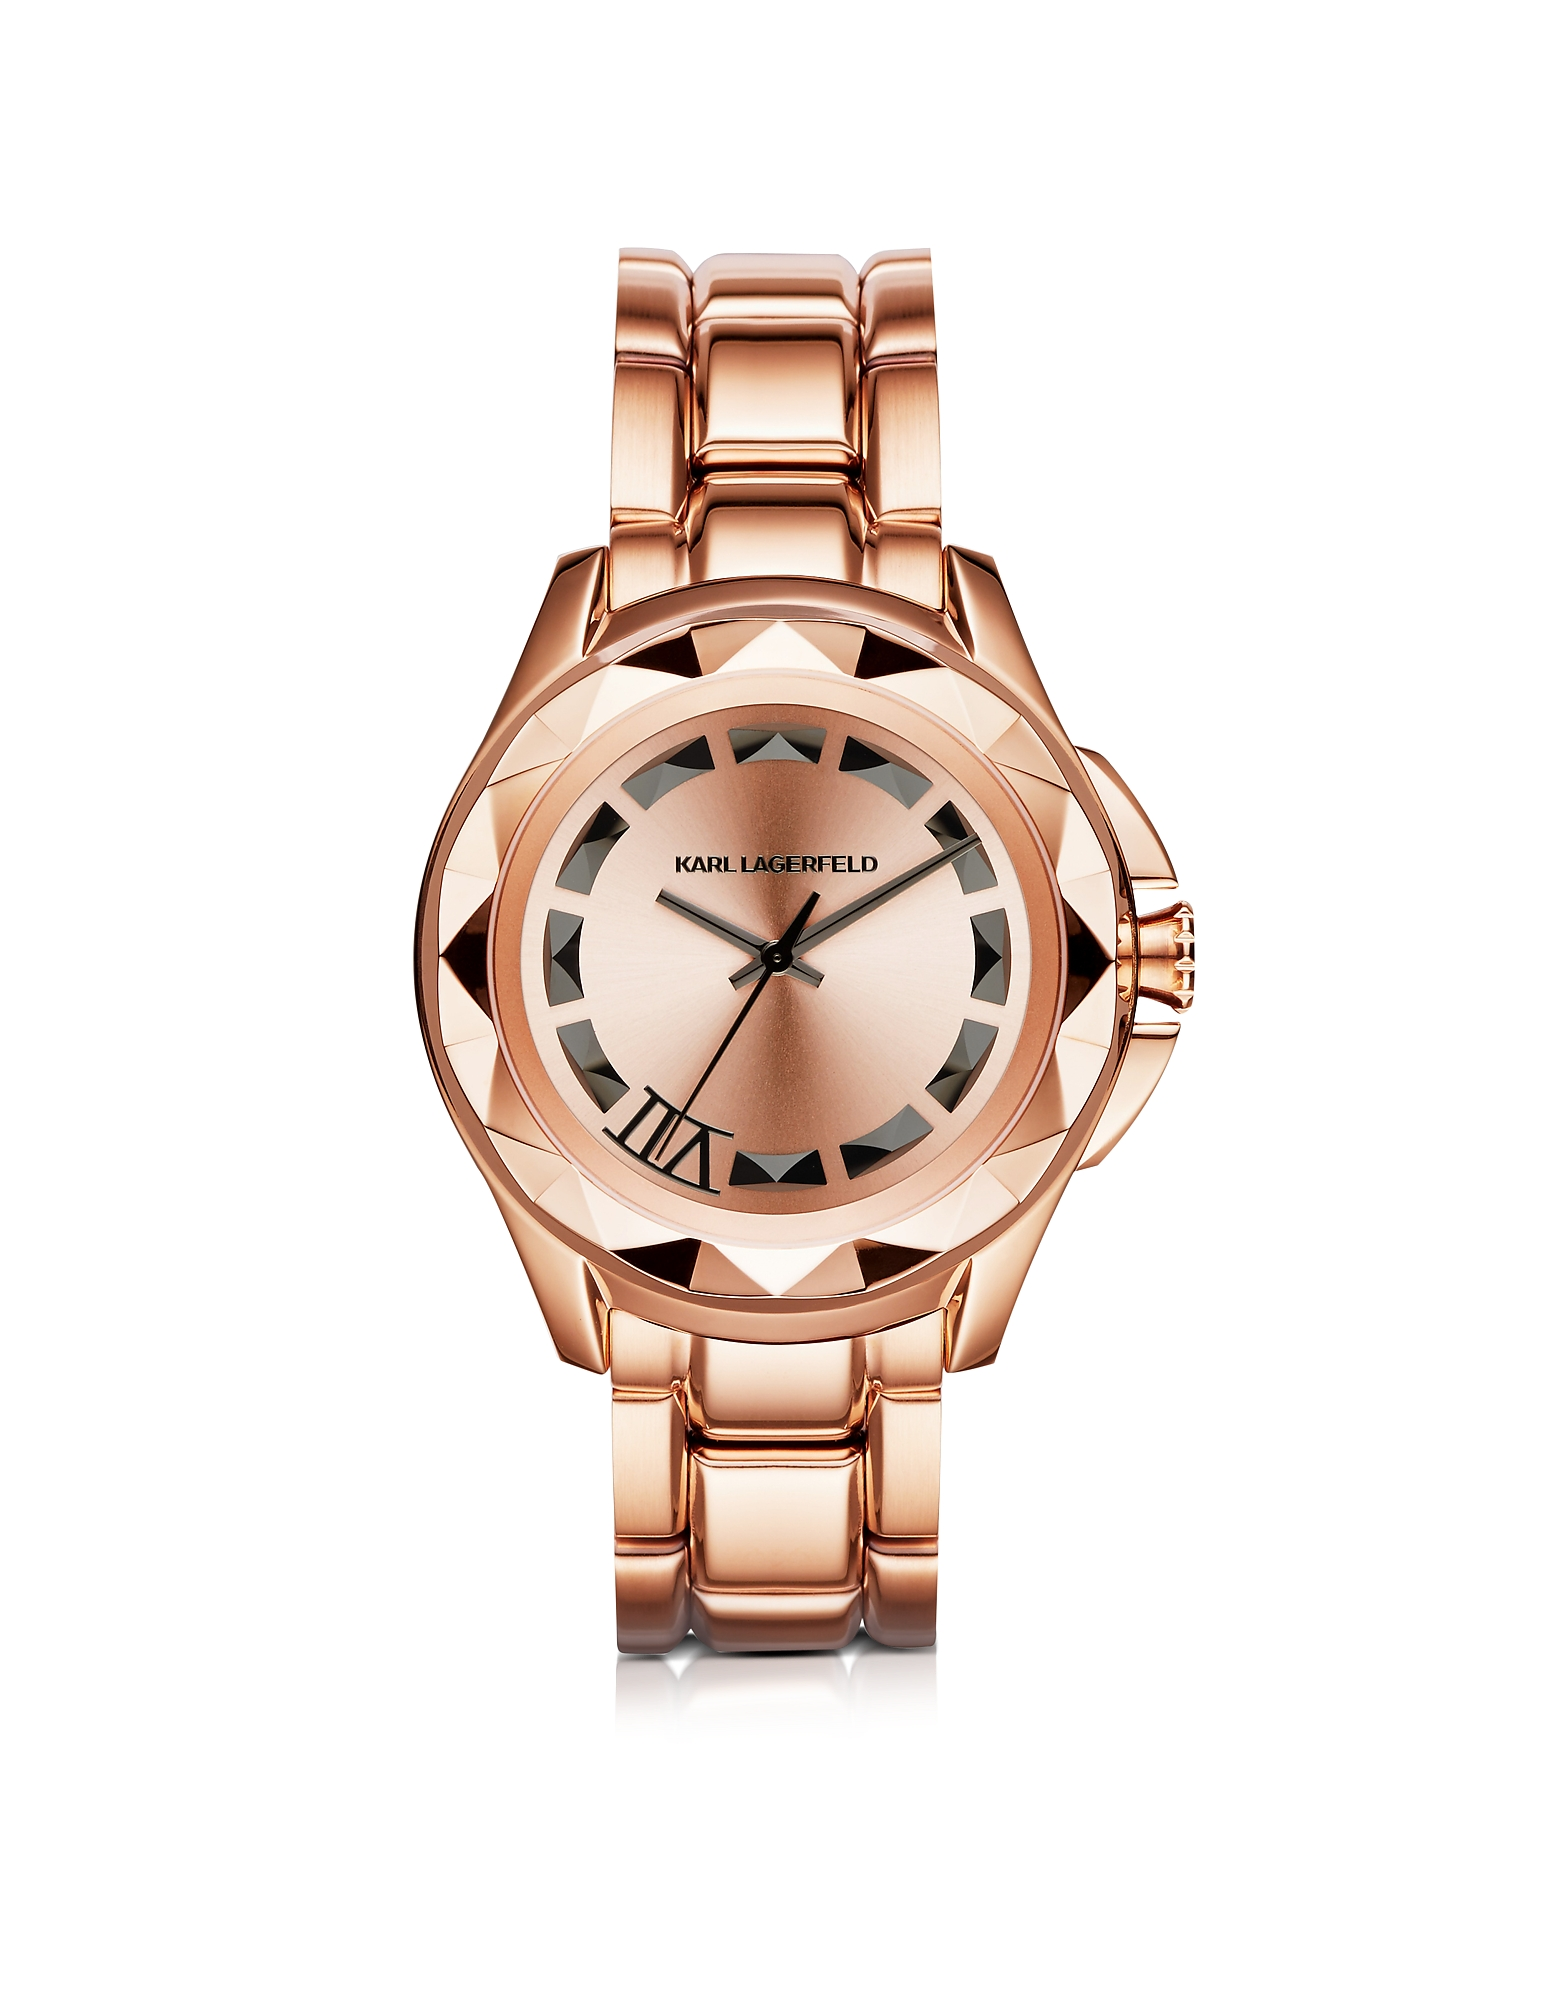 Karl Lagerfeld Women's Watches, Iconic Rose Glod Stainlees Steel Unisex Watch